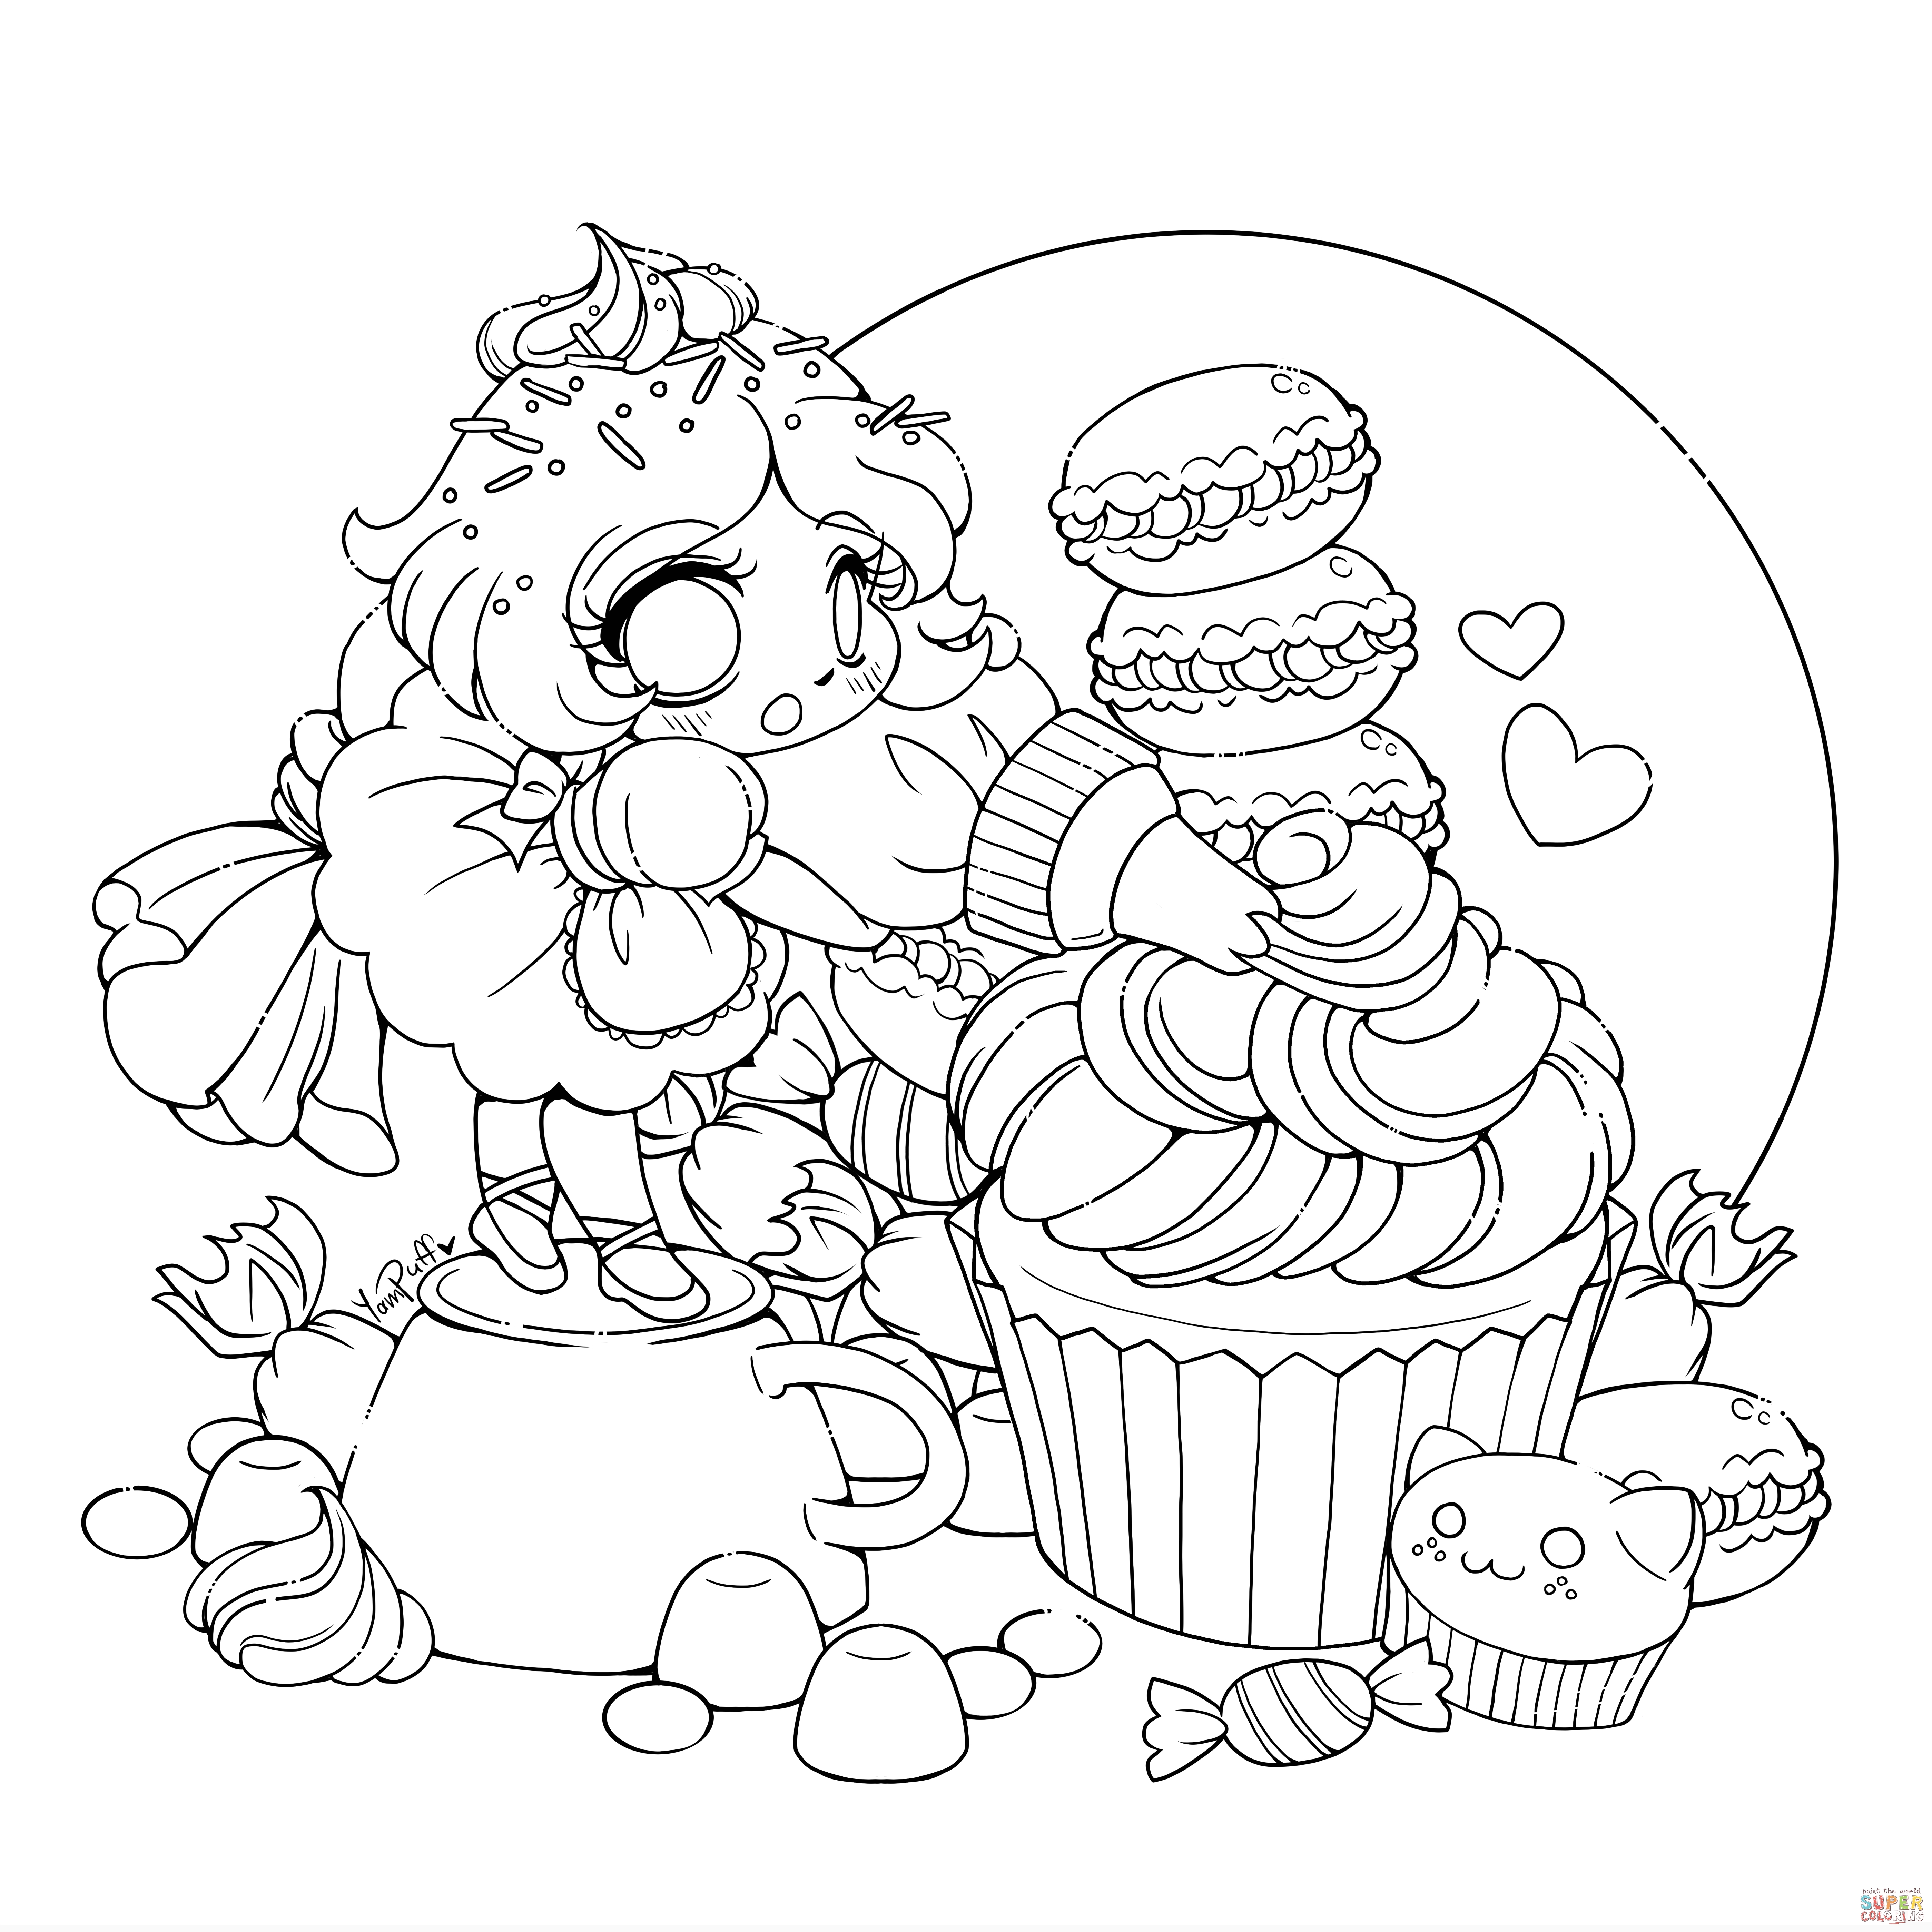 5600x5600 New Chibi Coloring Pages Coloringsuite Free Coloring Pages Download